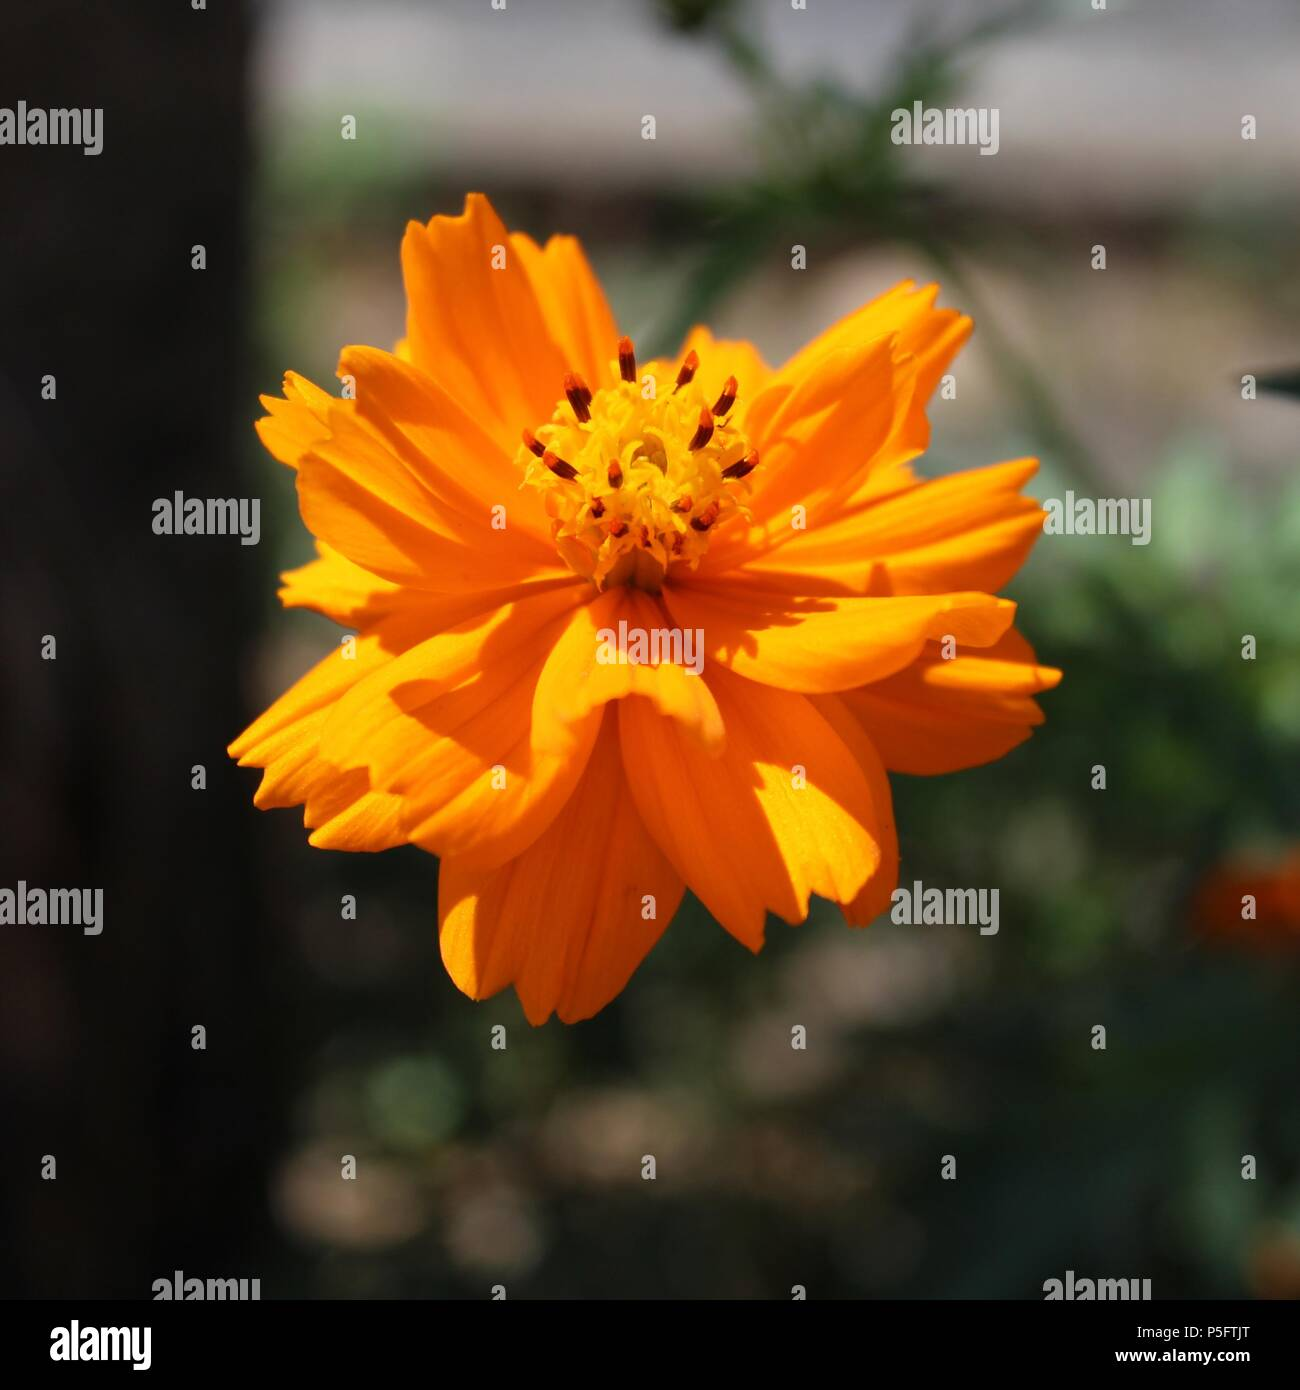 Flower symbolizing nature, beauty, perfume, color, decoration, celebrations and cuisine.Because they depend on the Sun, it also represents energy. - Stock Image